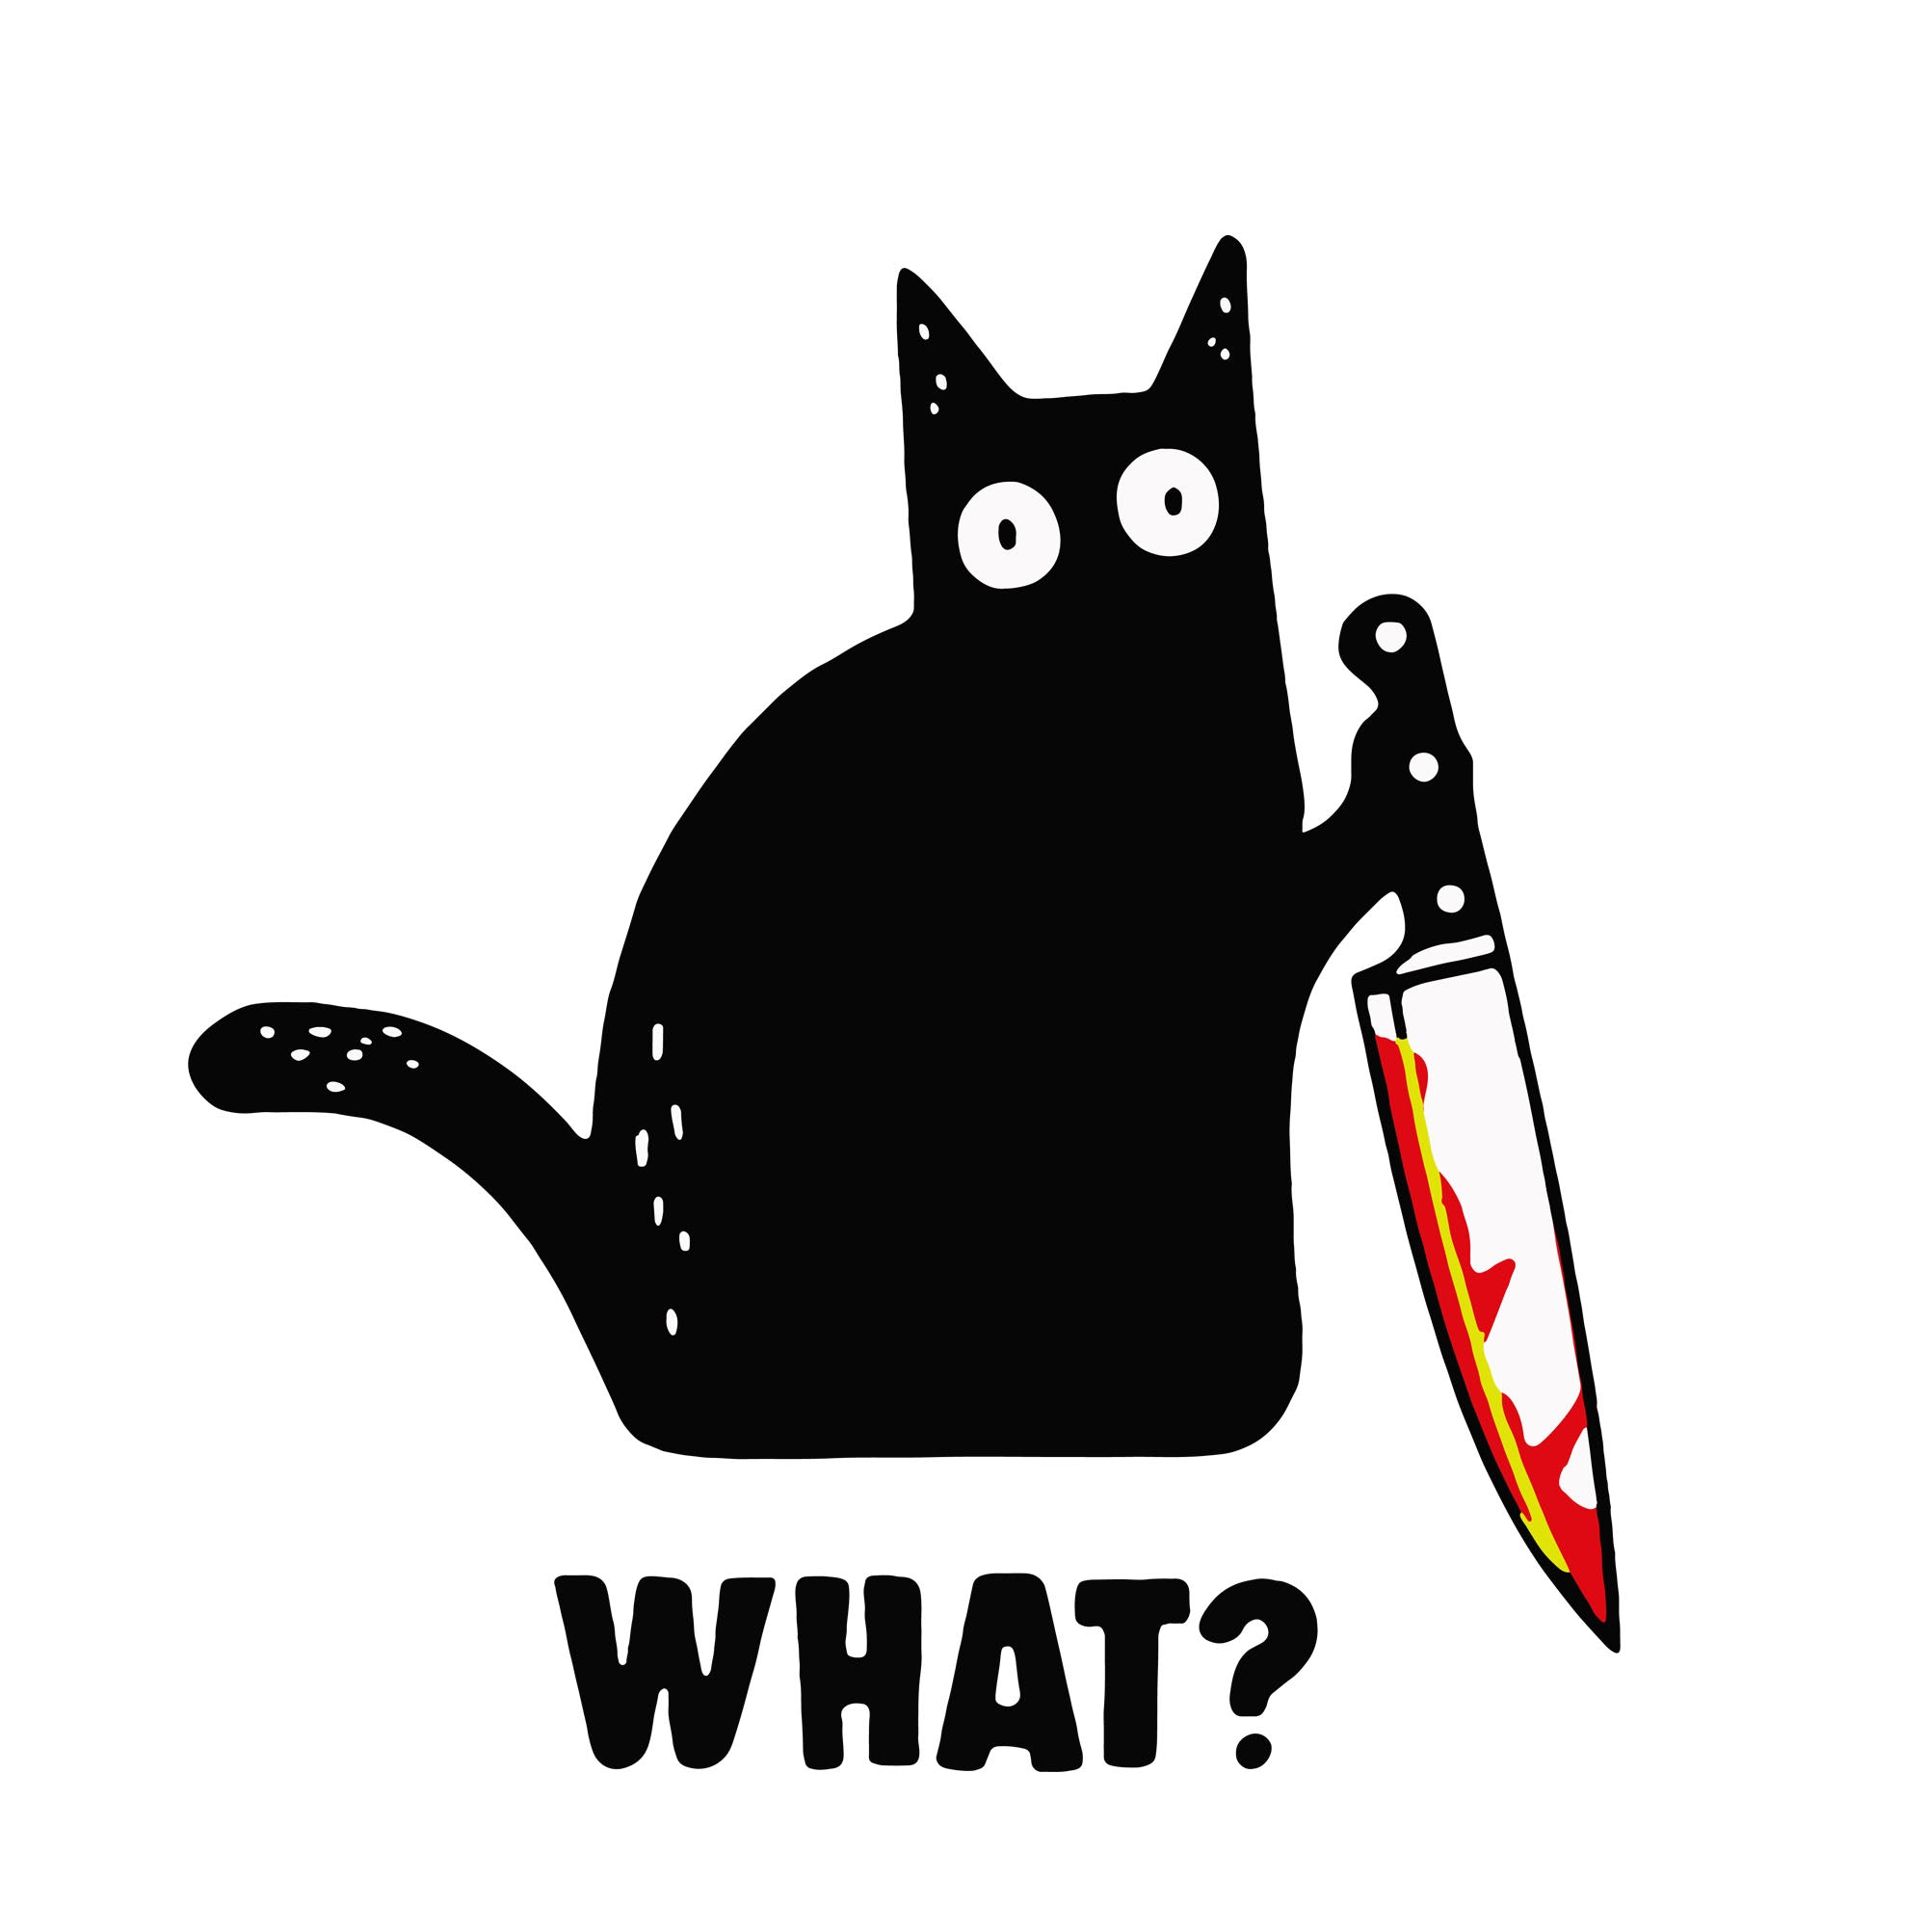 Cat What png, Cat What svg, Cat What file,Cat What digital, Cat What Funny Black Cat Murderous Cat With Knife,Cat What Funny Black Cat